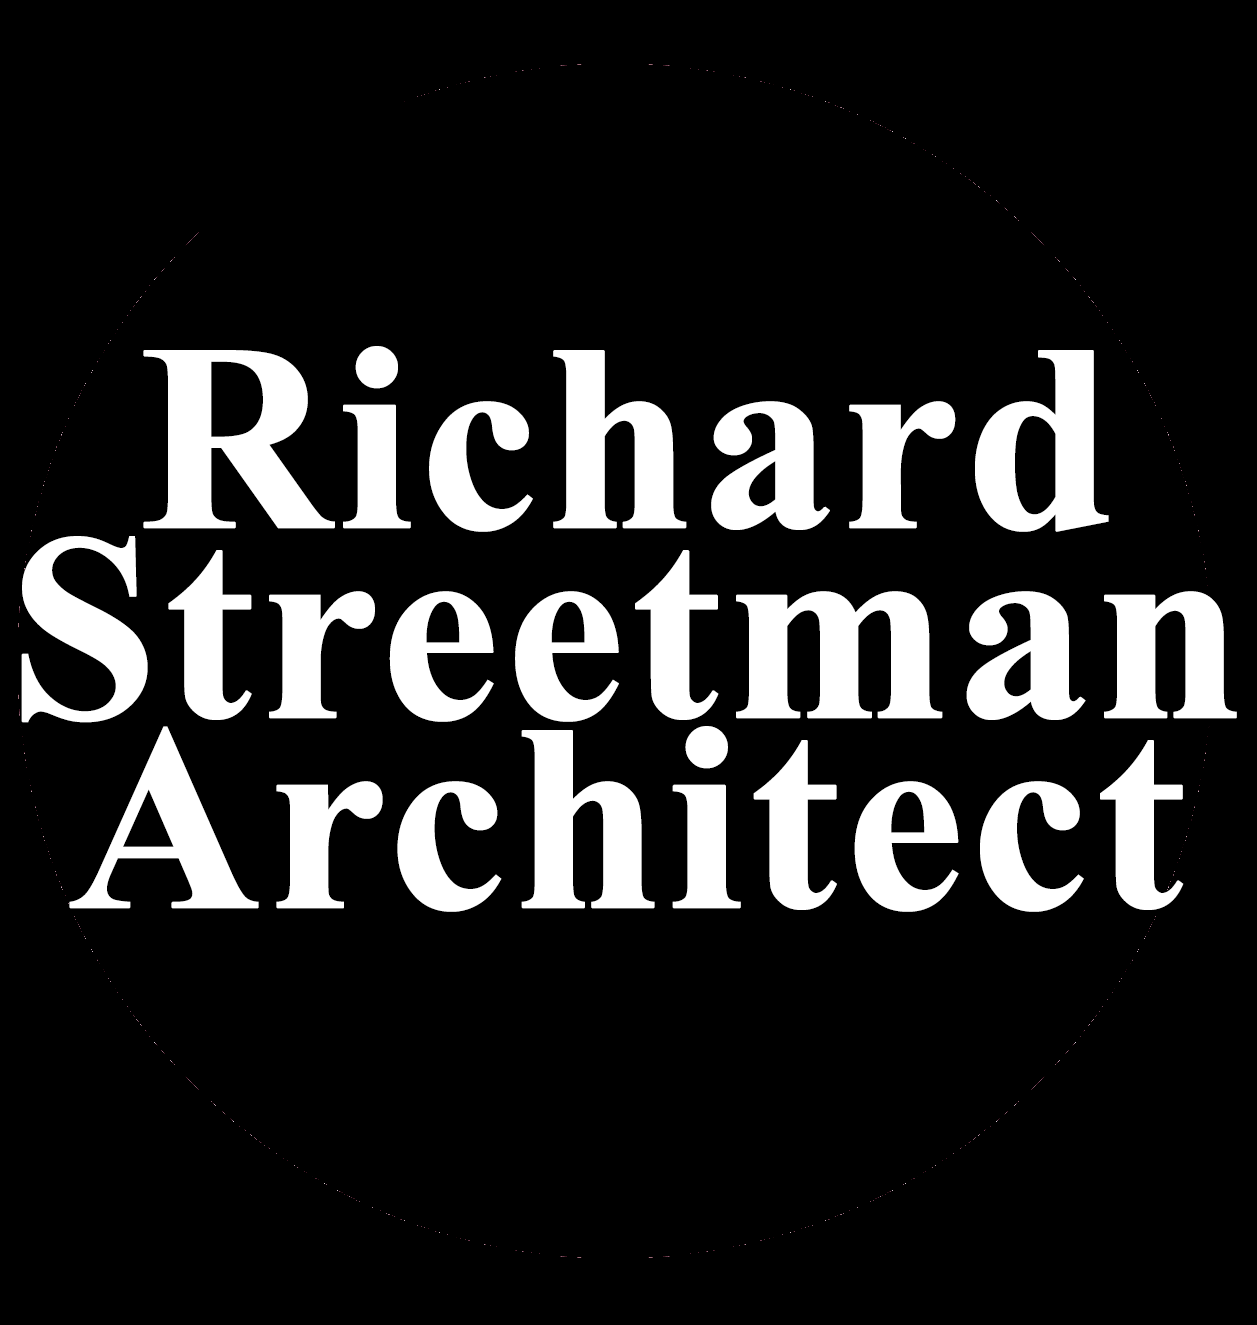 Richard streetman architect